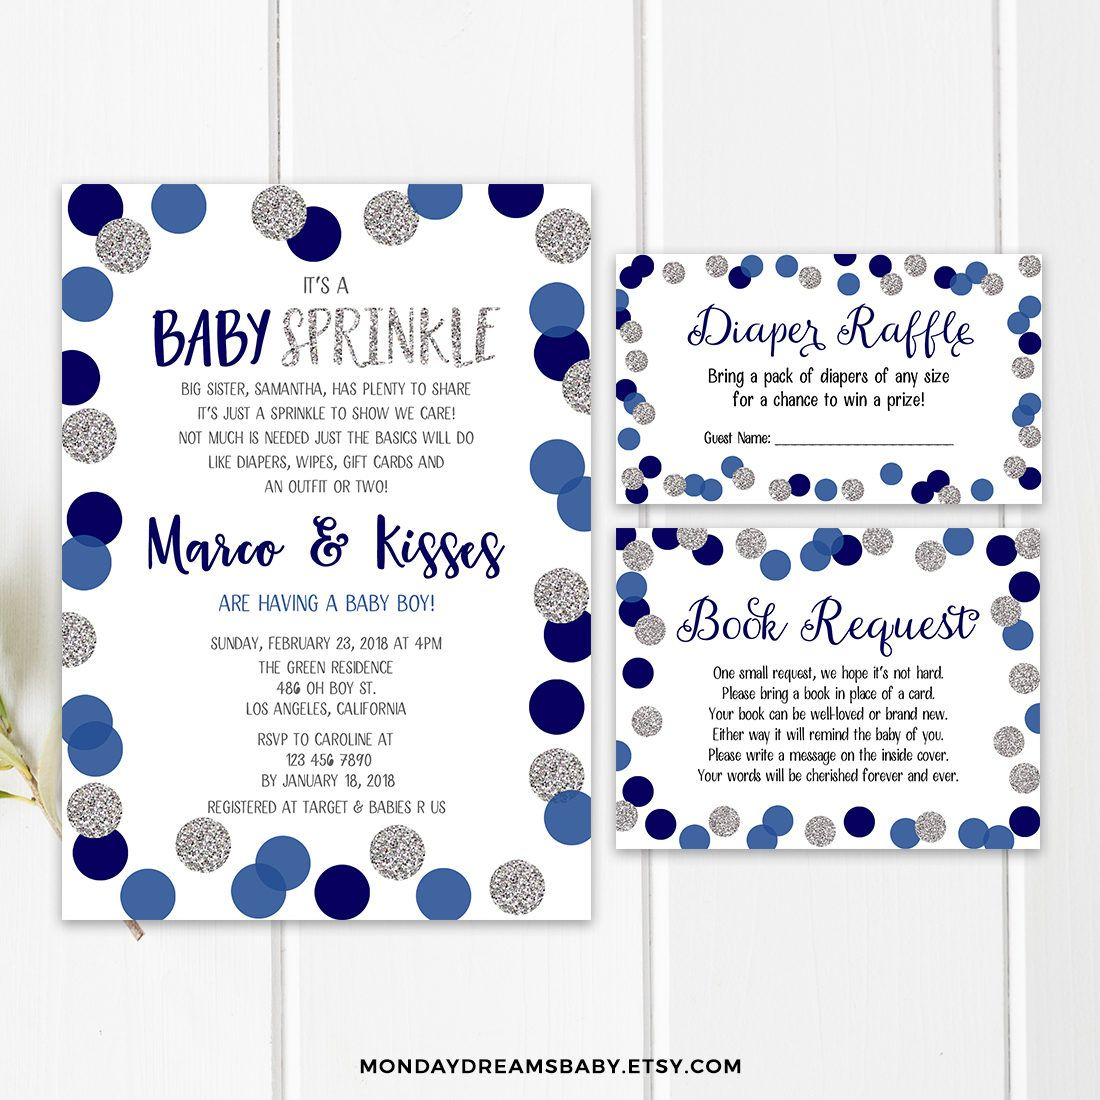 Blue Baby Sprinkle Invitation Printable Silver Confetti Baby   Etsy (With  images)   Baby sprinkle invitations, Sprinkle invitations, Baby sprinkle  invitations boy